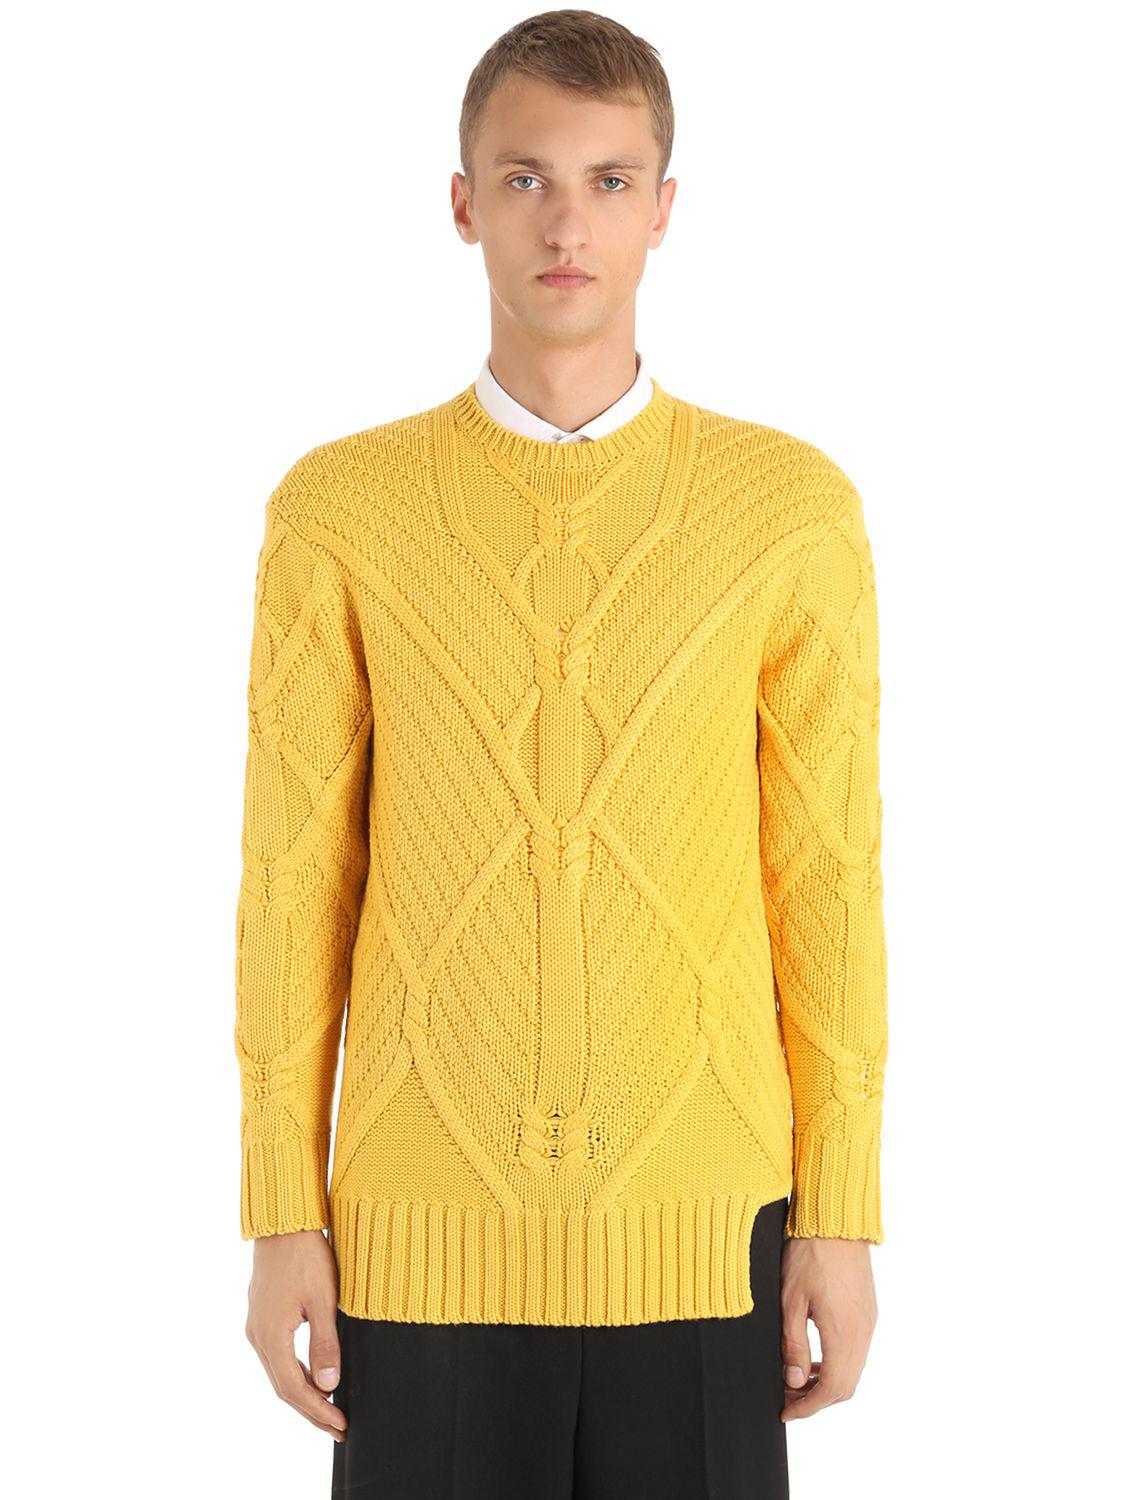 KNITWEAR - Turtlenecks Neil Barrett Discount Order Cheap Many Kinds Of Outlet Collections Cheap Original Low Shipping Online eTTgjCB